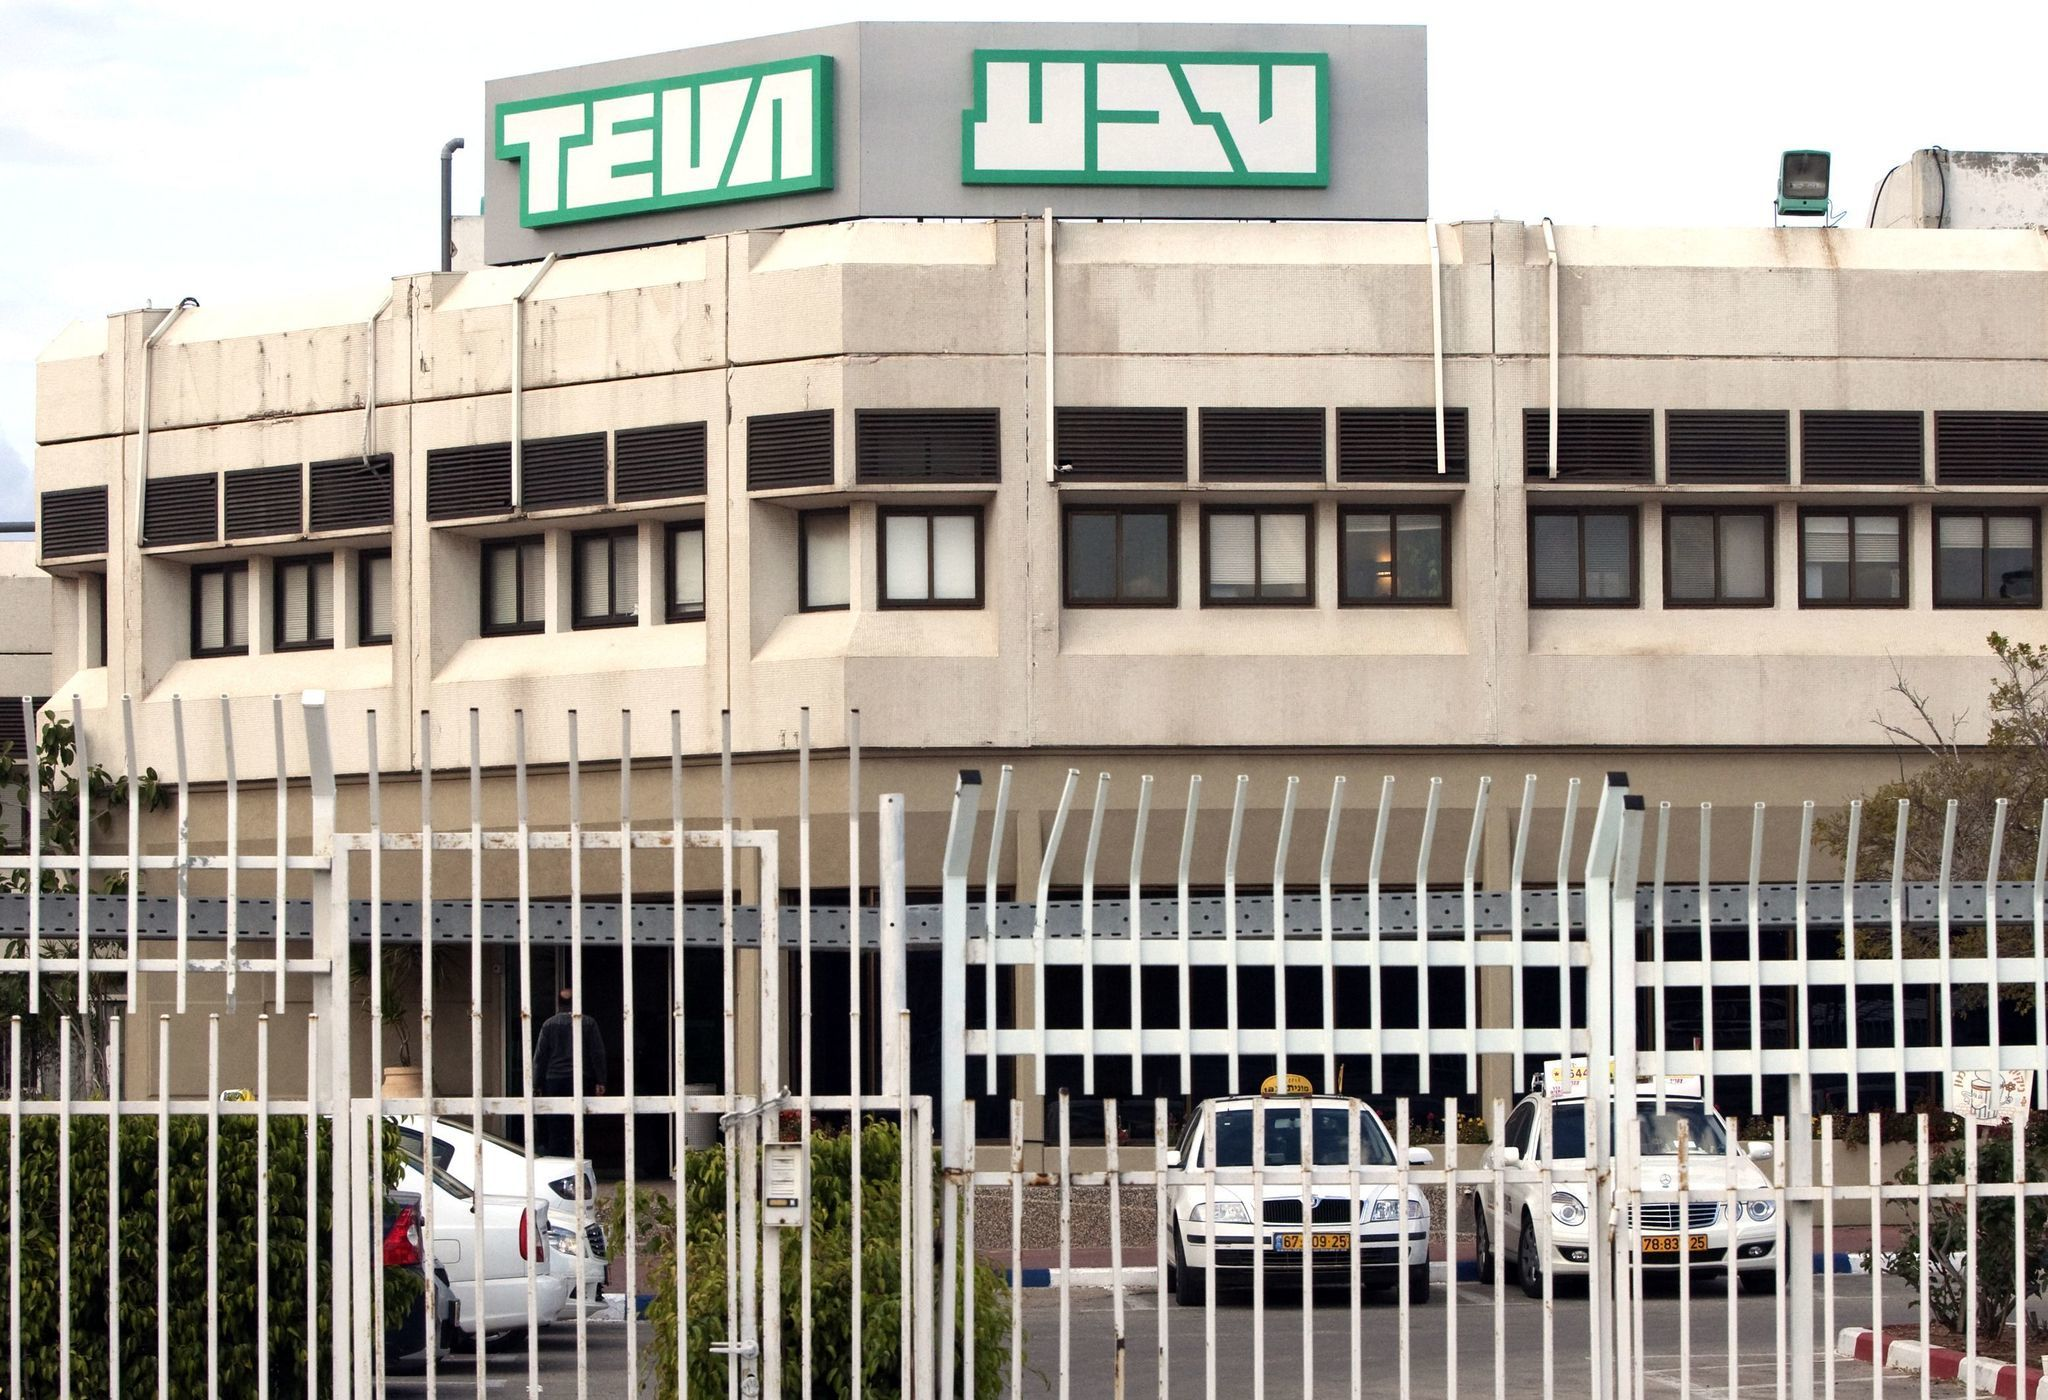 teva pharmaceutical global integration Experienced professional, with 20 years of progressive accomplishments in managerial positions in global large scale pharmaceutical companies, leading various.